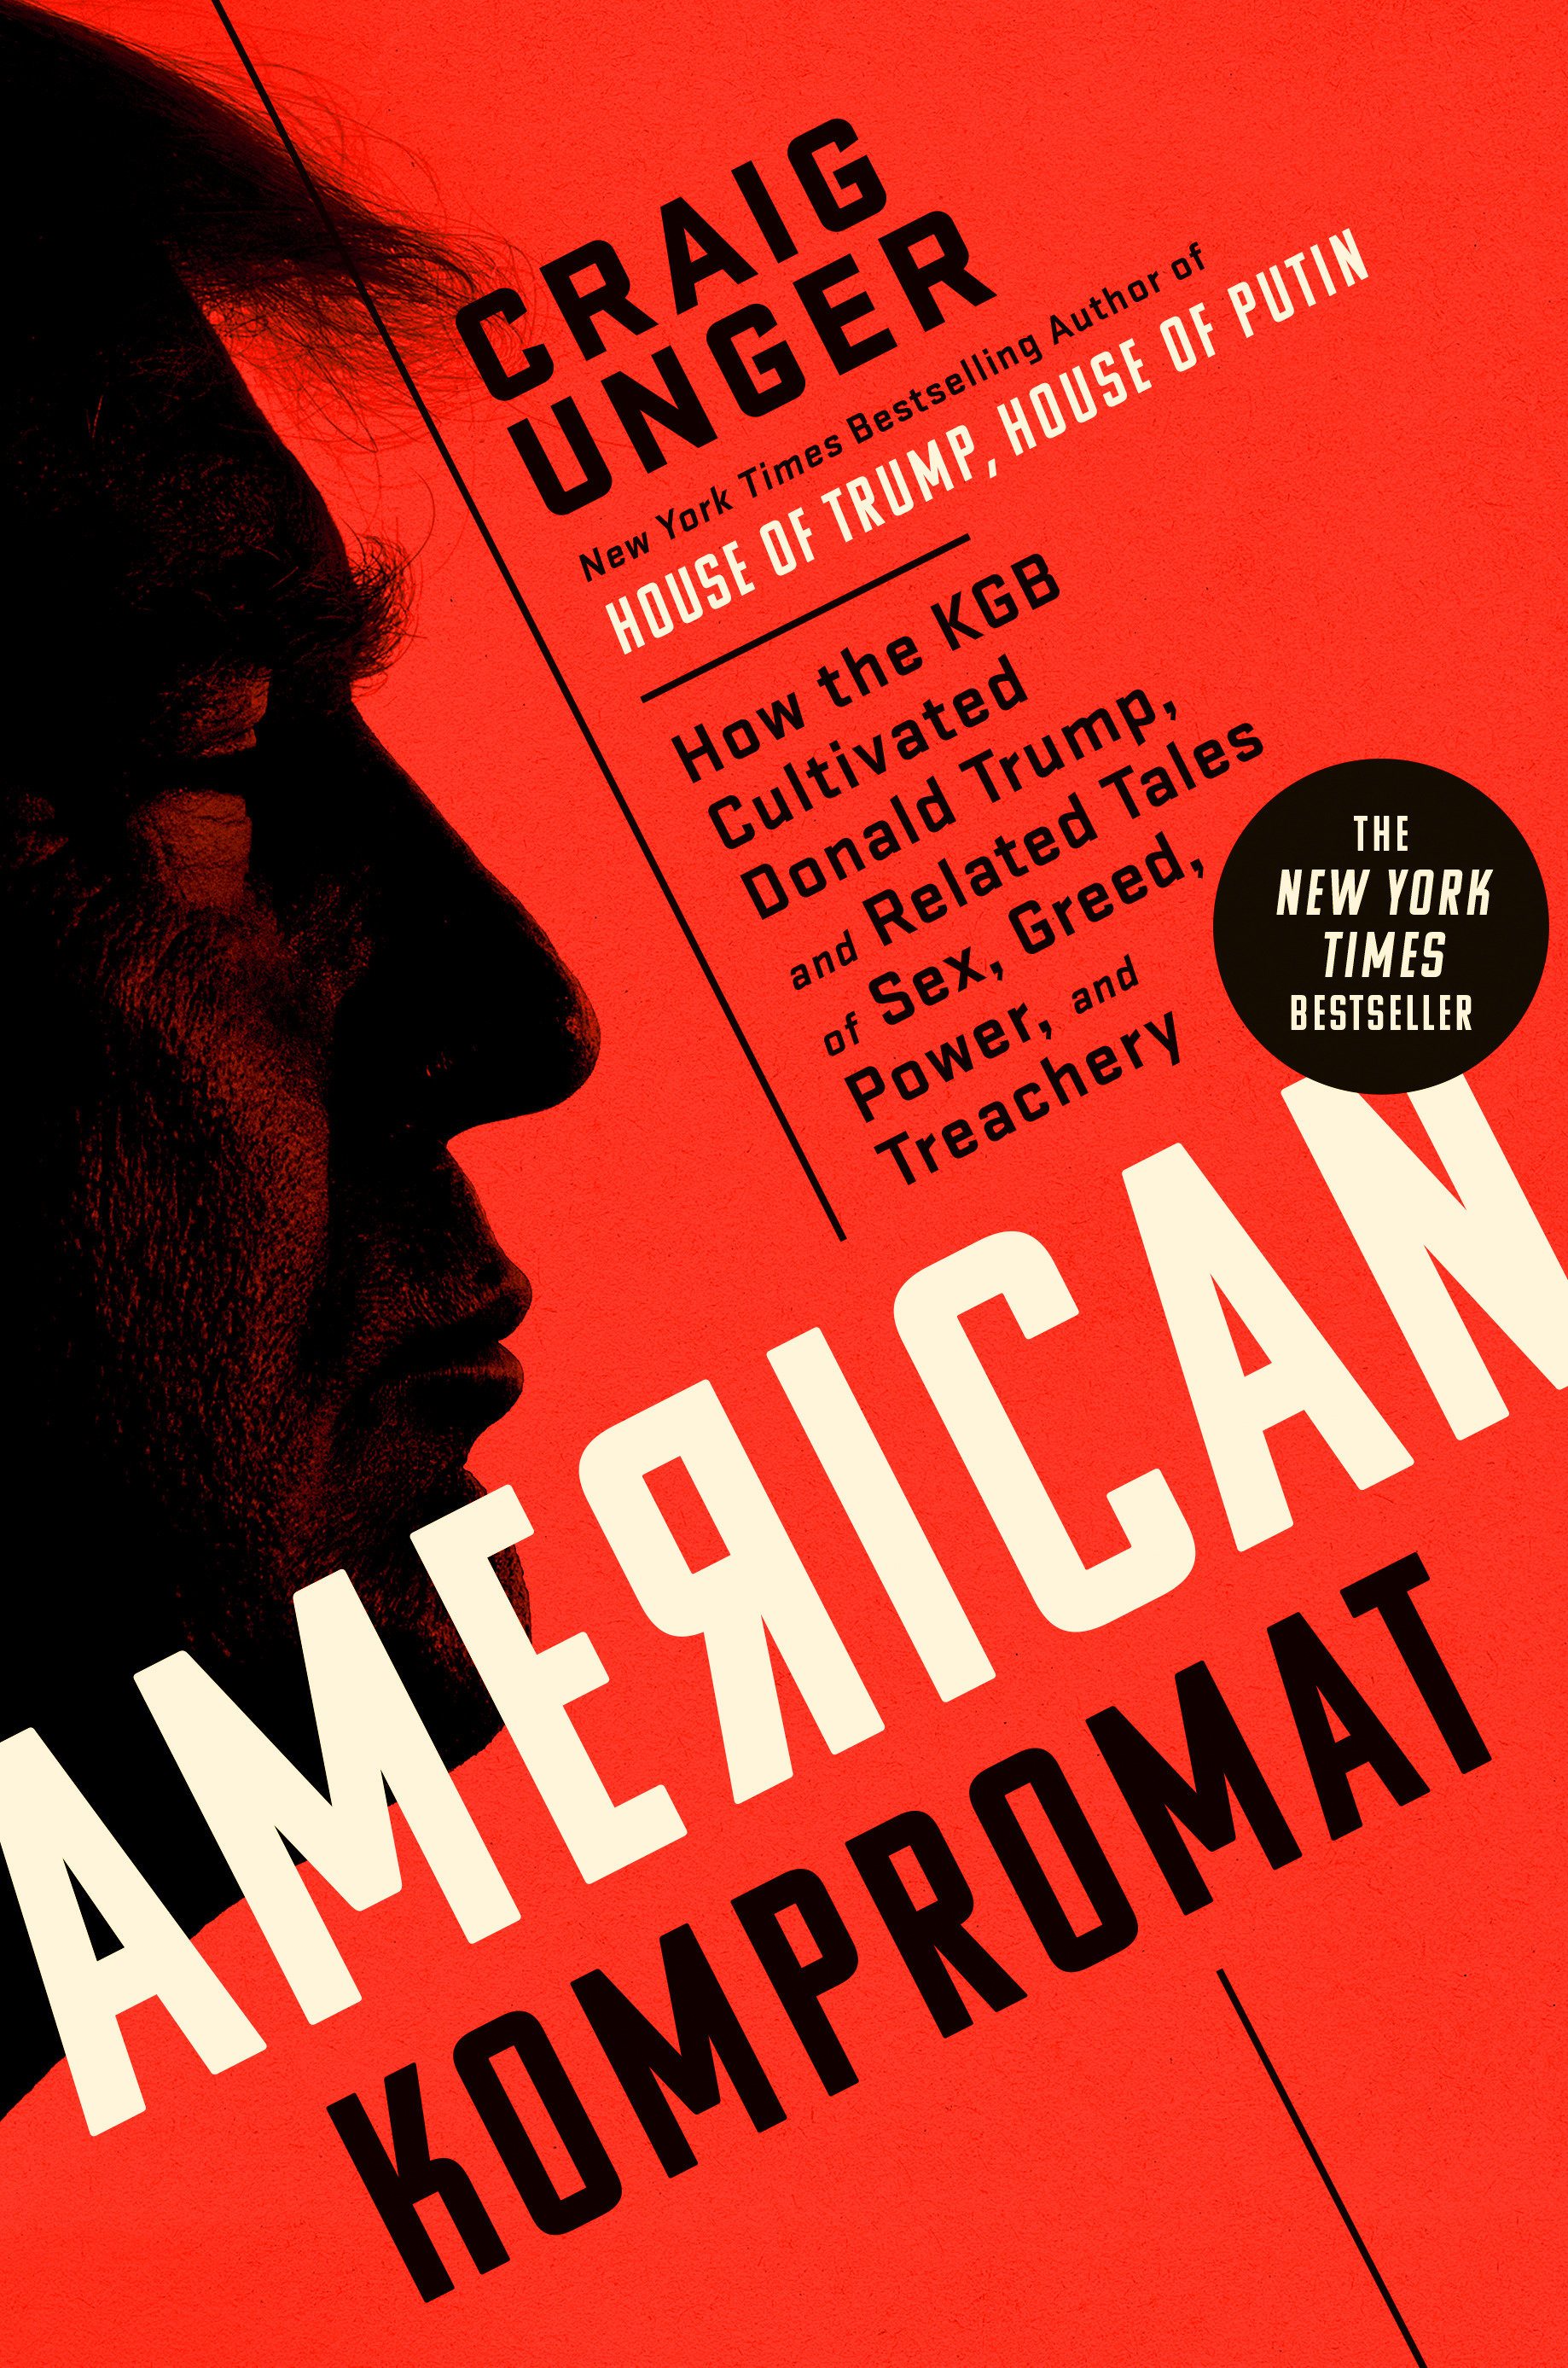 American Kompromat How the KGB Cultivated Donald Trump, and Related Tales of Sex, Greed, Power, and Treachery